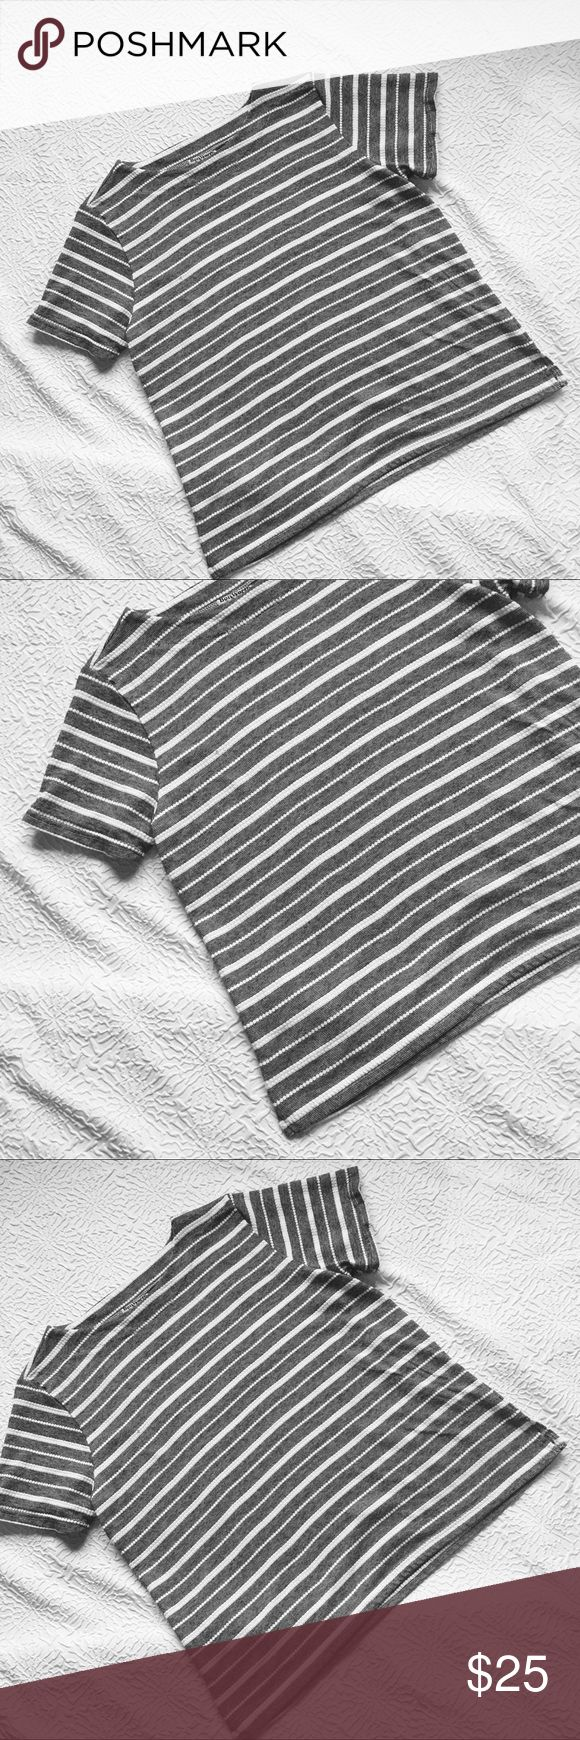 """Women Shirt Small Petite Grey Striped Oversized Bon Worth Women Shirt Small Petite Grey Gray White Striped Oversized Like New Vintage Measurements: Length 23.75"""" Shoulders 15"""" Armpit to Armpit 20.5"""". Fabric: 60% Cotton 40% Polyester. Made in the U.S.A Tops Tees - Short Sleeve"""